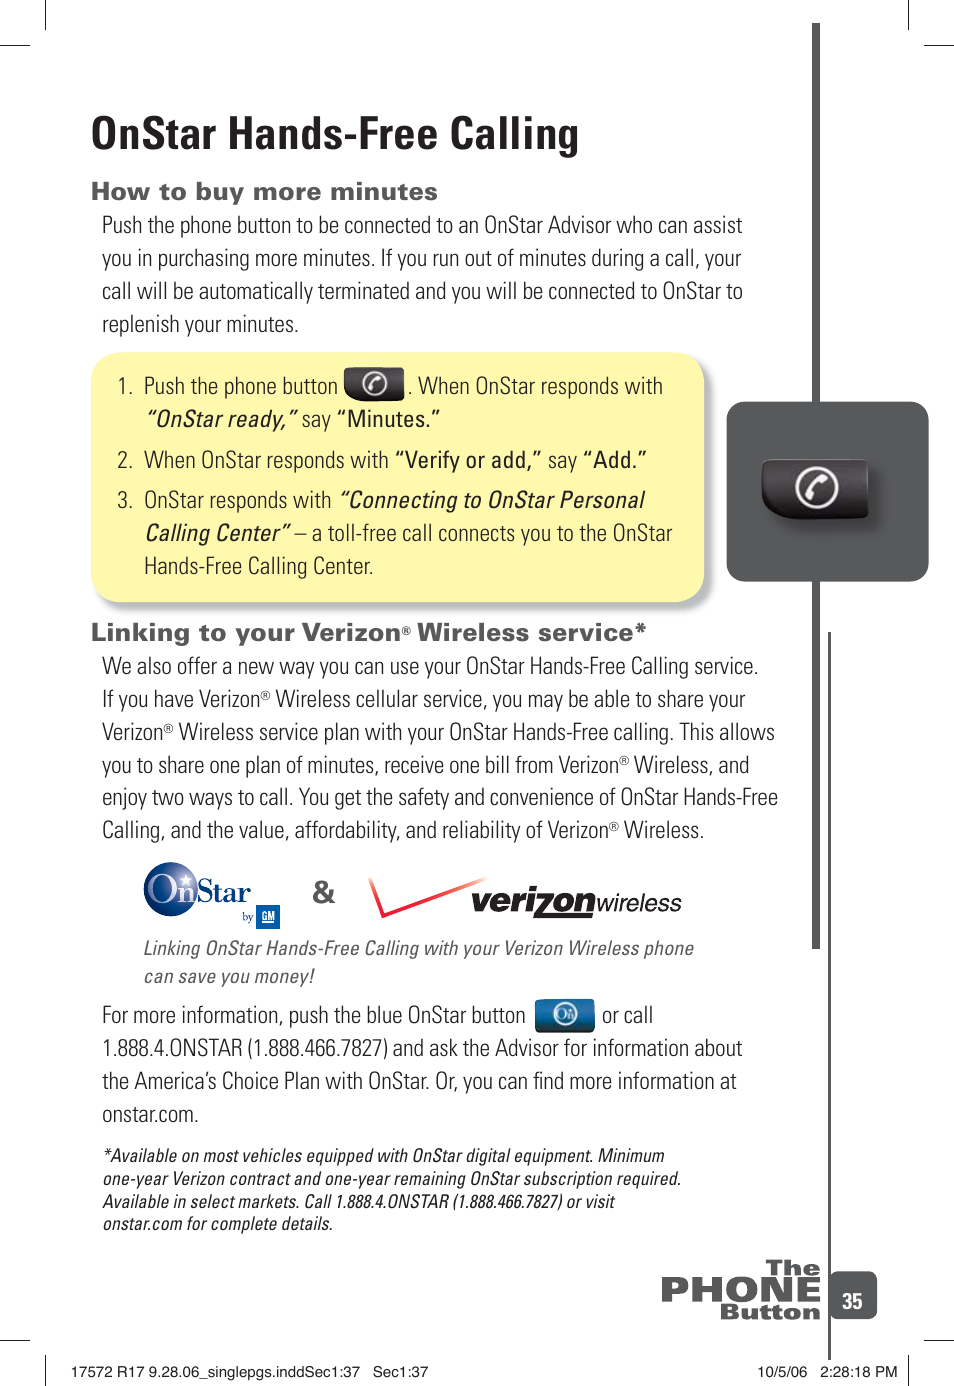 Onstar hands-free calling, How to buy more minutes, Linking